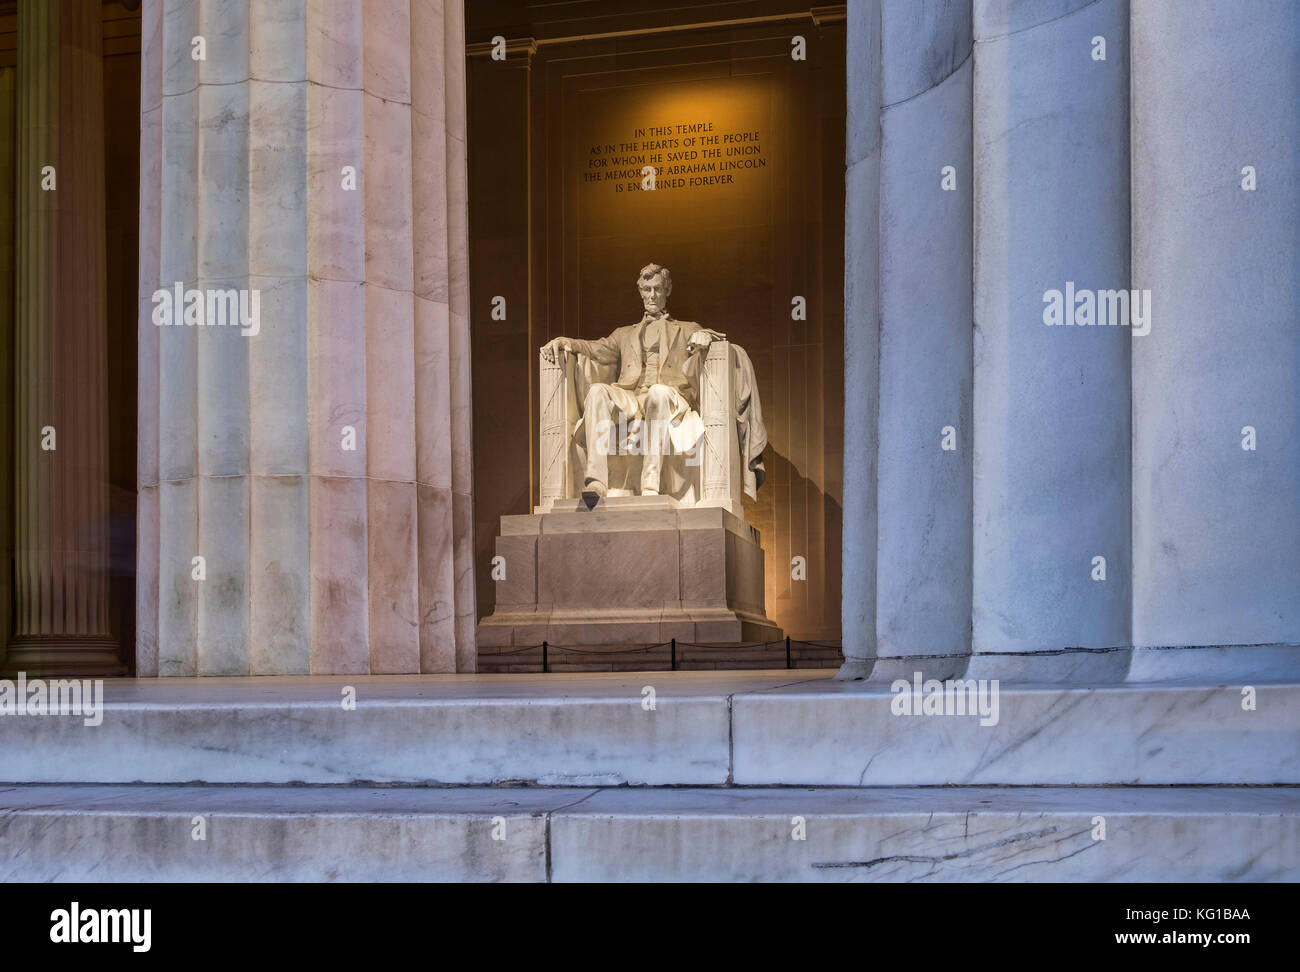 The Lincoln Memorial from the memorial steps, National Mall, Washington DC, USA - Stock Image